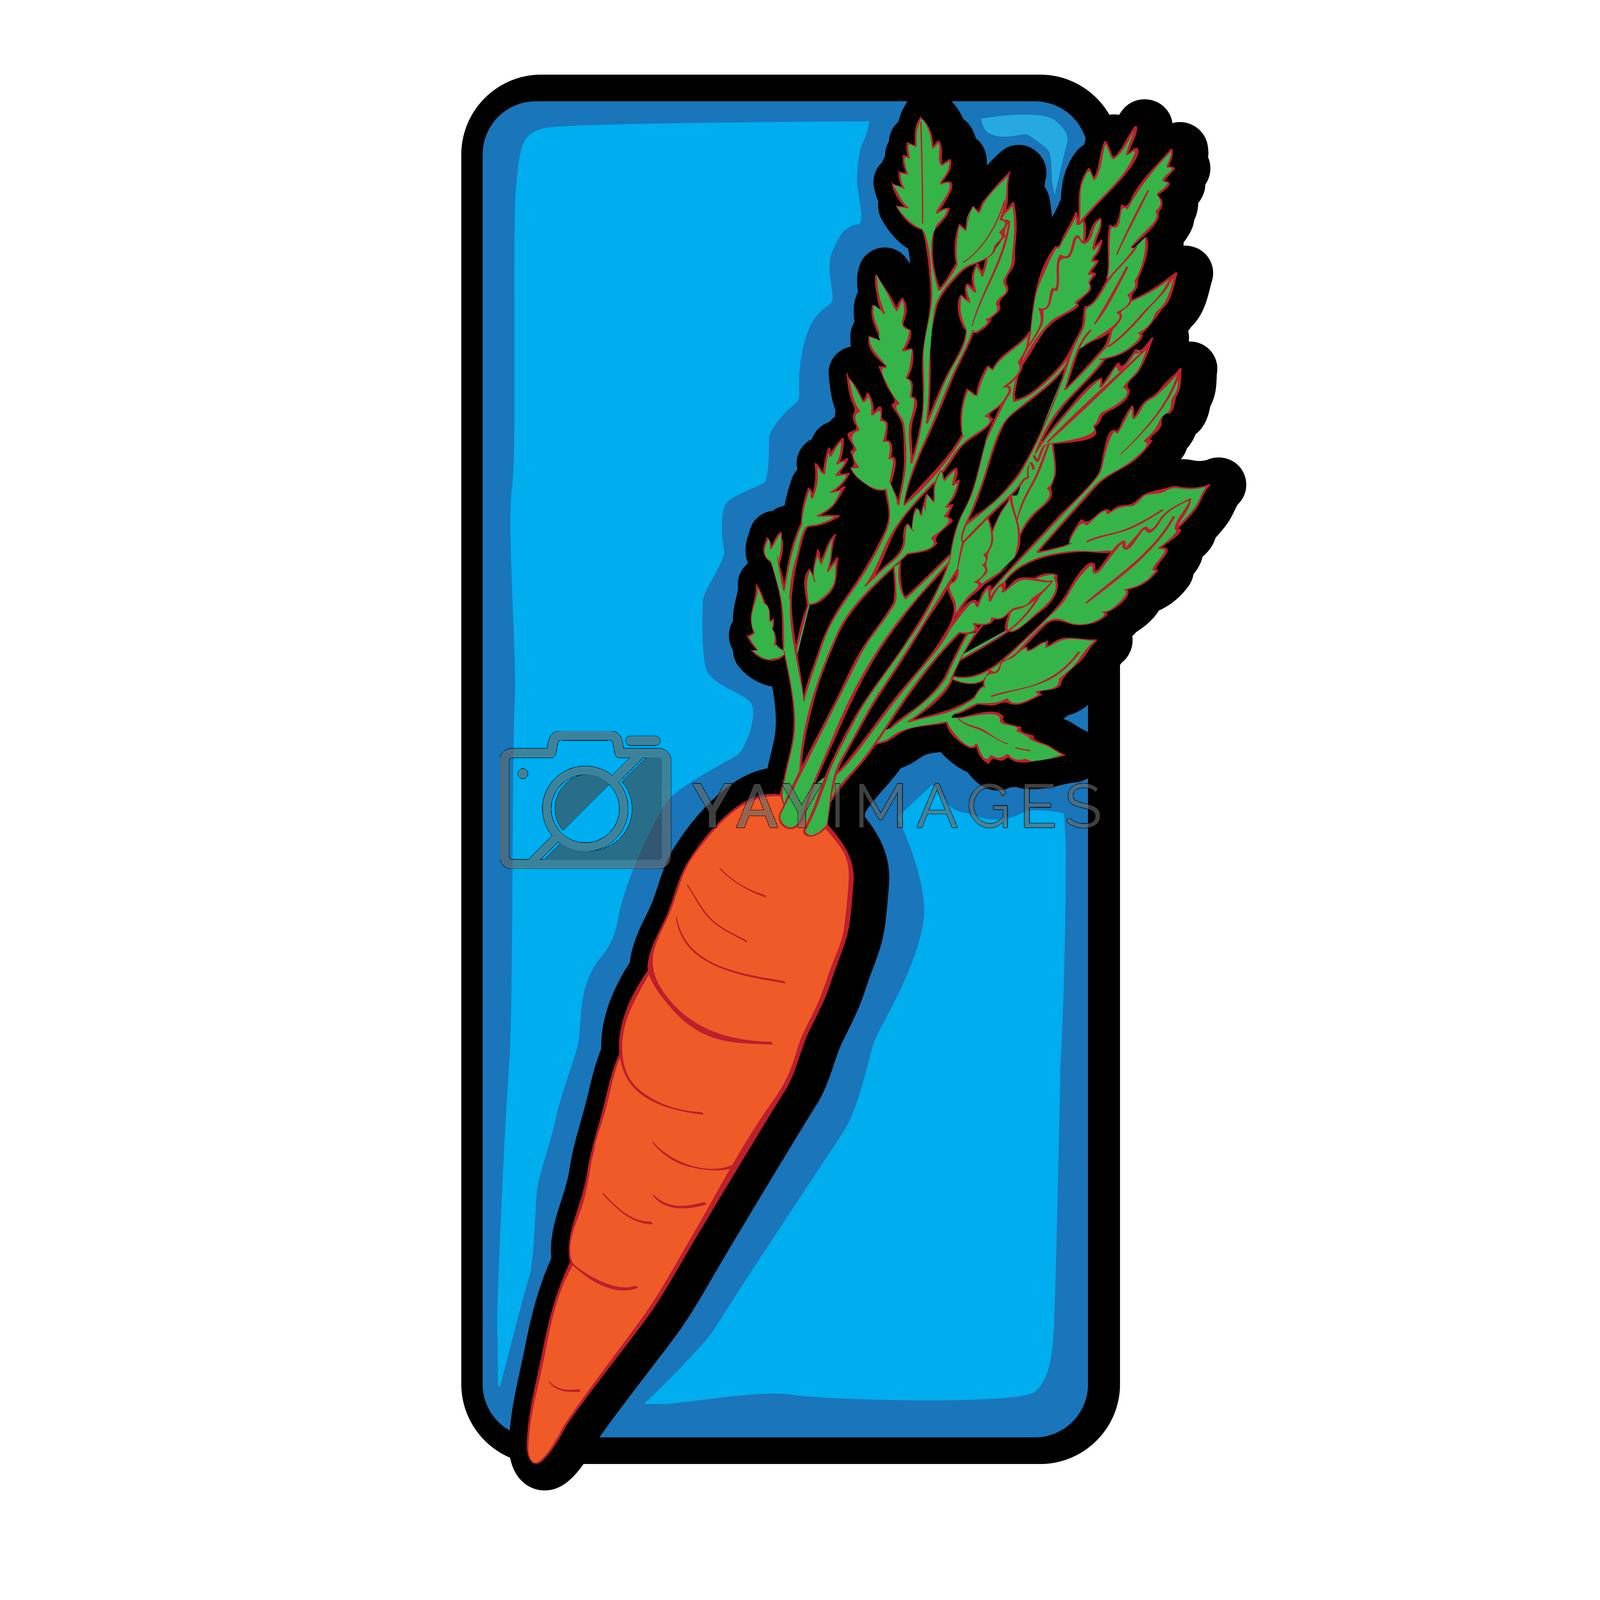 Carrot clip art,doodle hand drawn illustration isolated on white